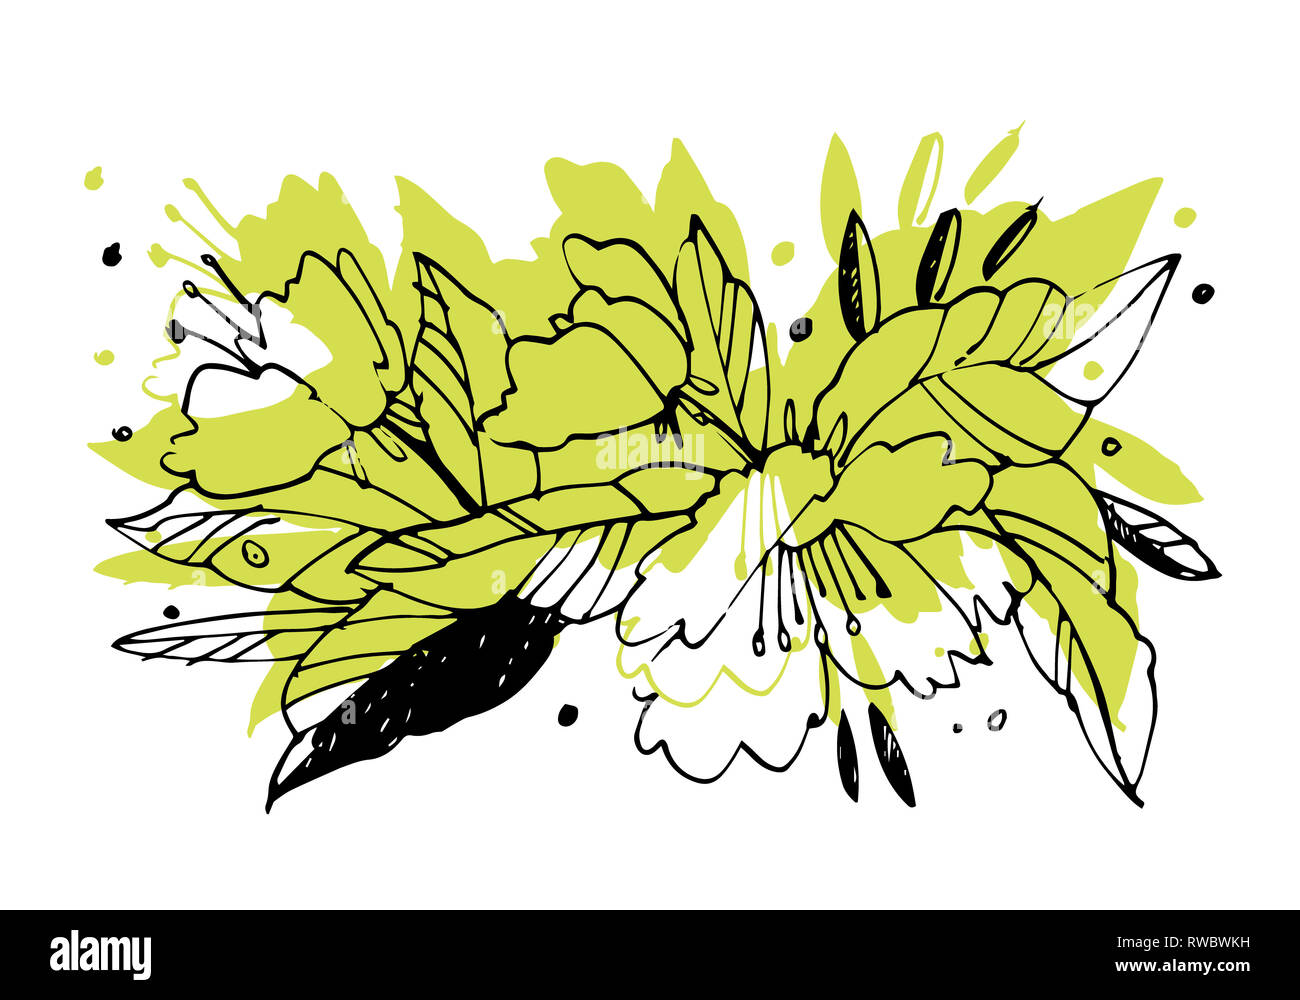 Creative Flower Graphic Illustration Textures Made With Black Ink